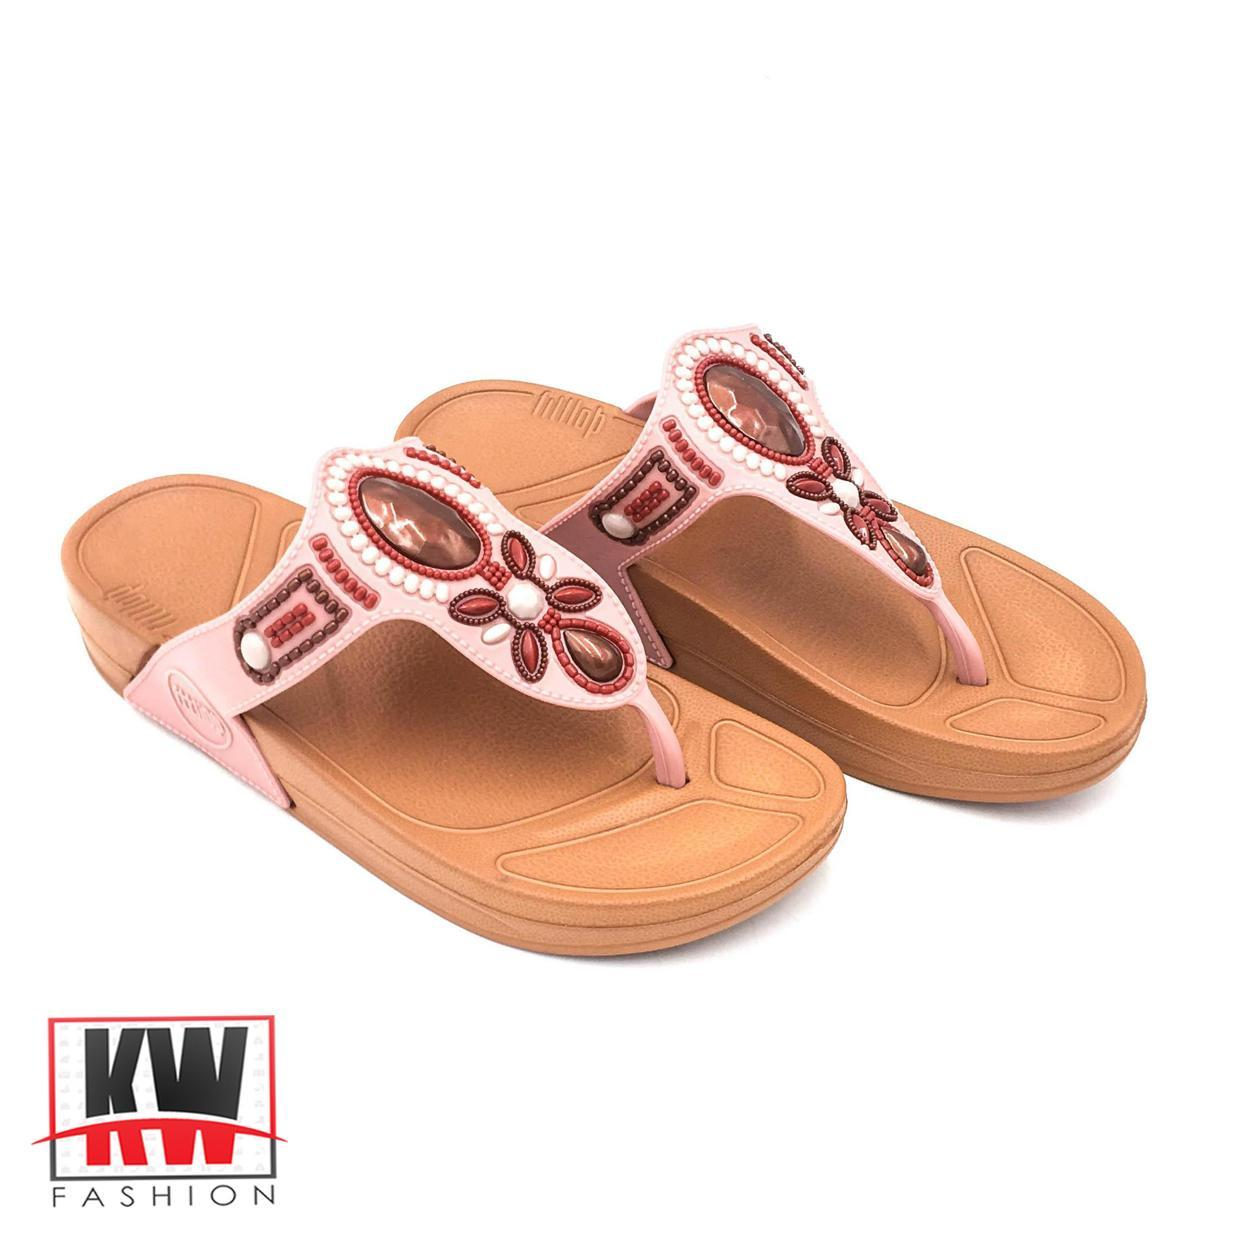 19740685b Flip Flops for Women for sale - Womens Flip Flops online brands ...